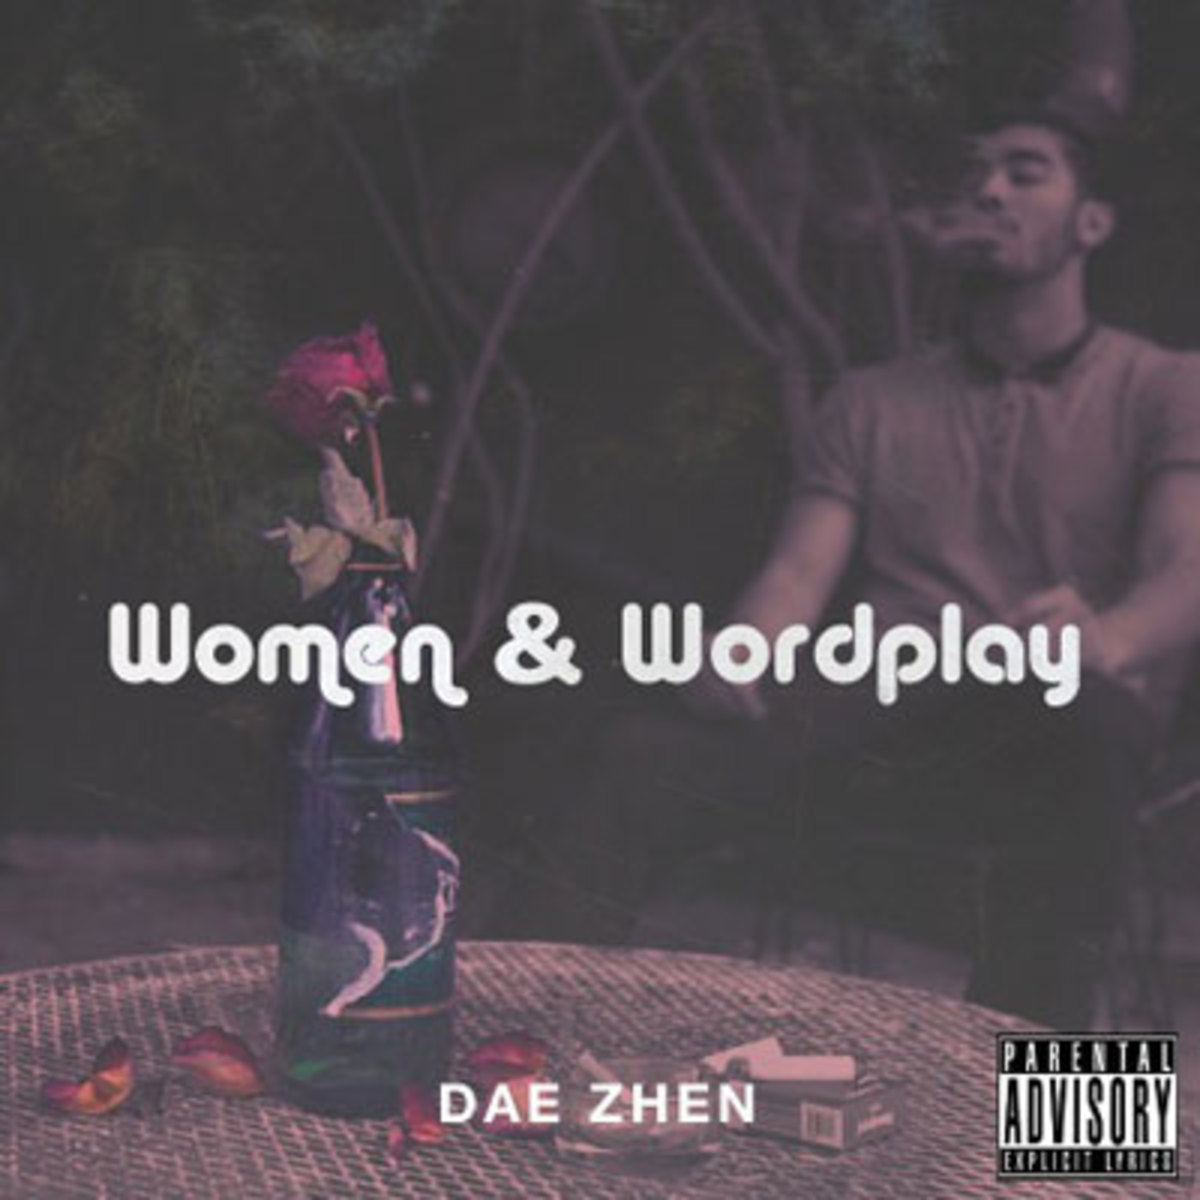 daezhen-womenwordplay.jpg